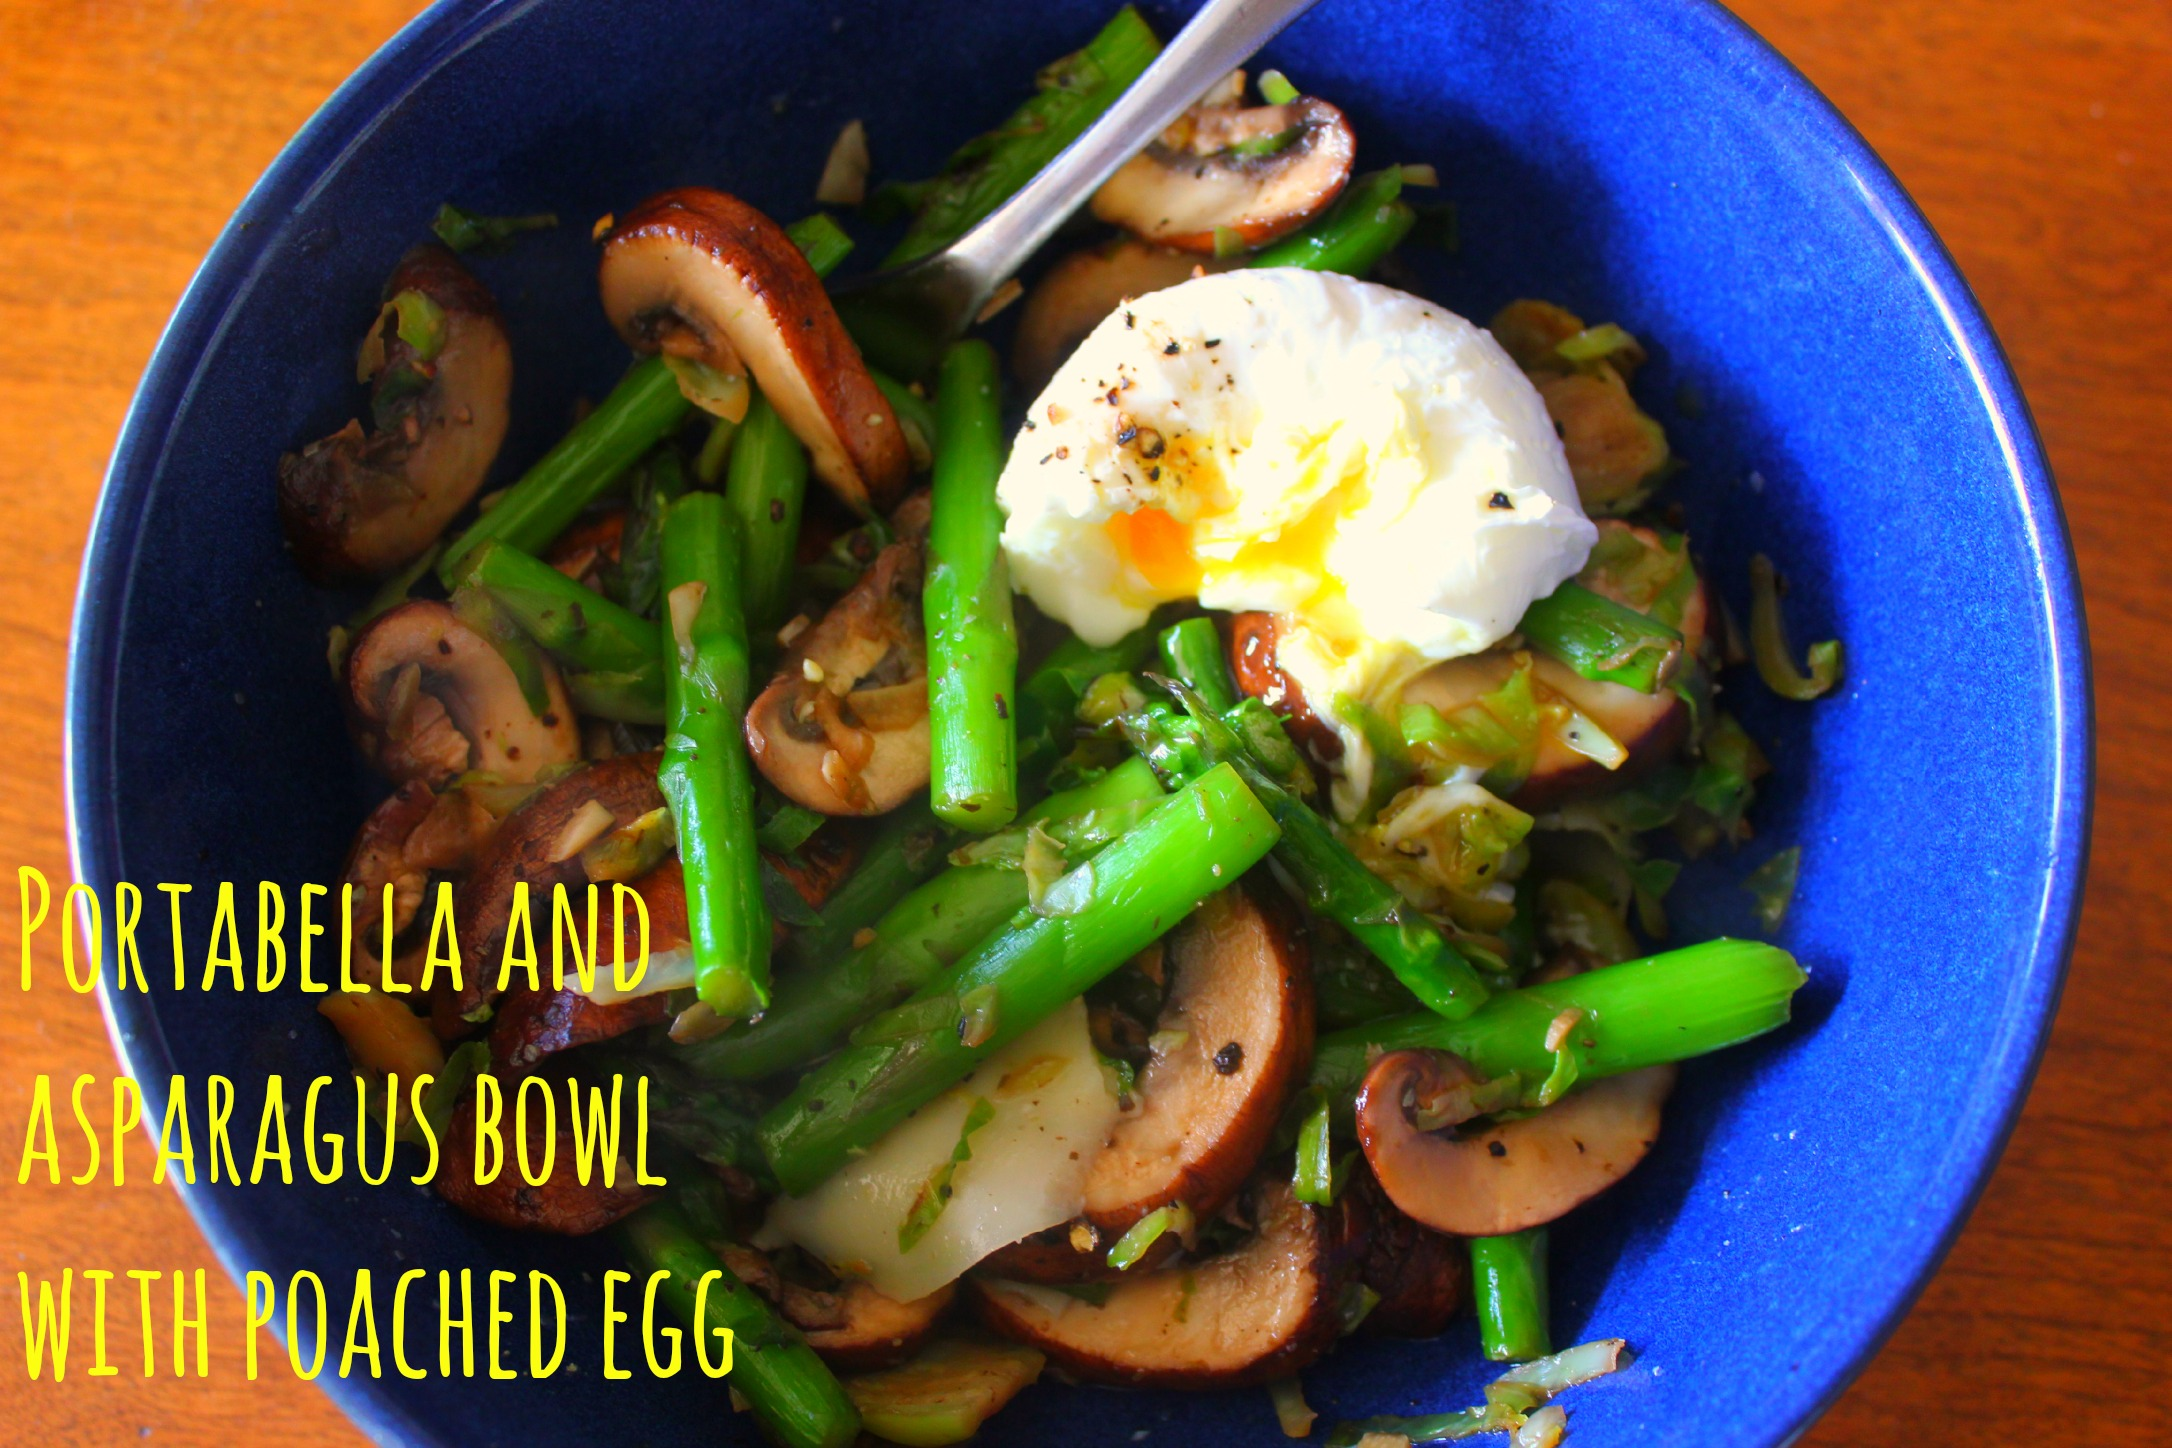 Portabella and Asparagus Bowl with Poached Egg